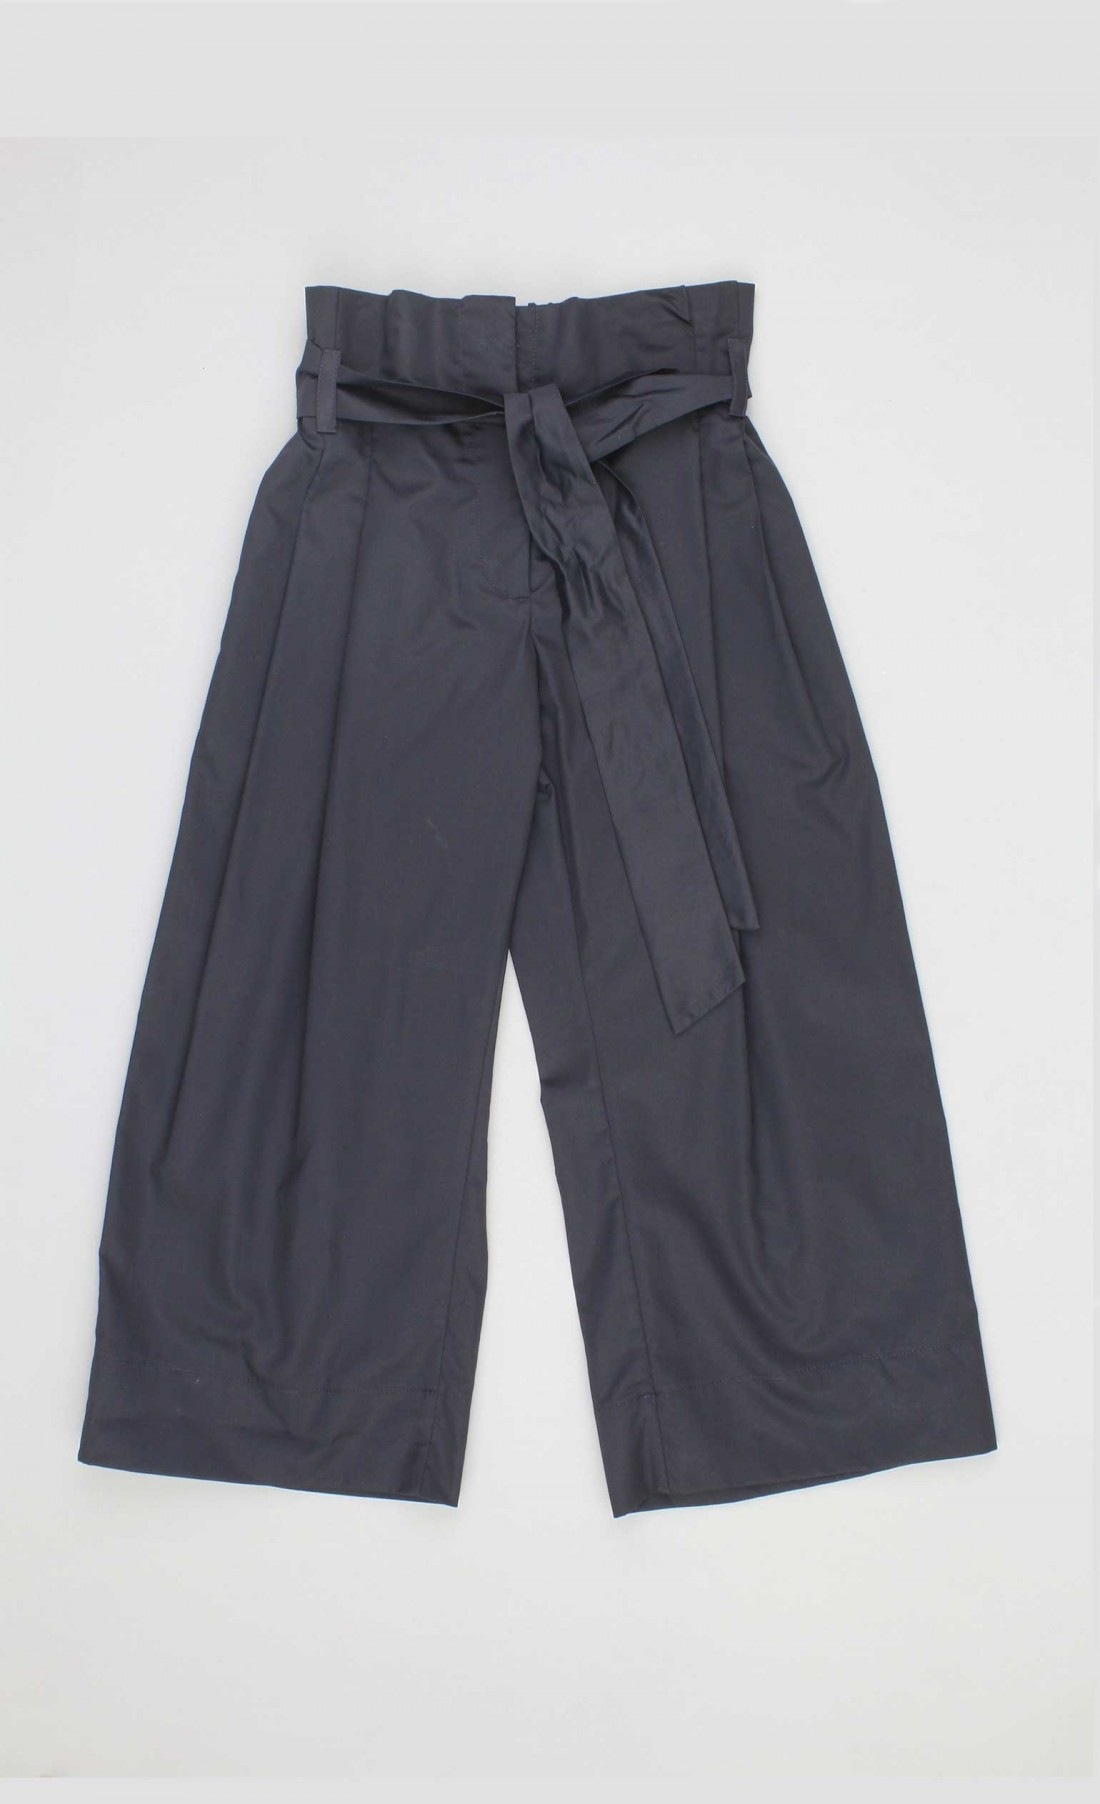 Pantaloni coulotte in cotone blu